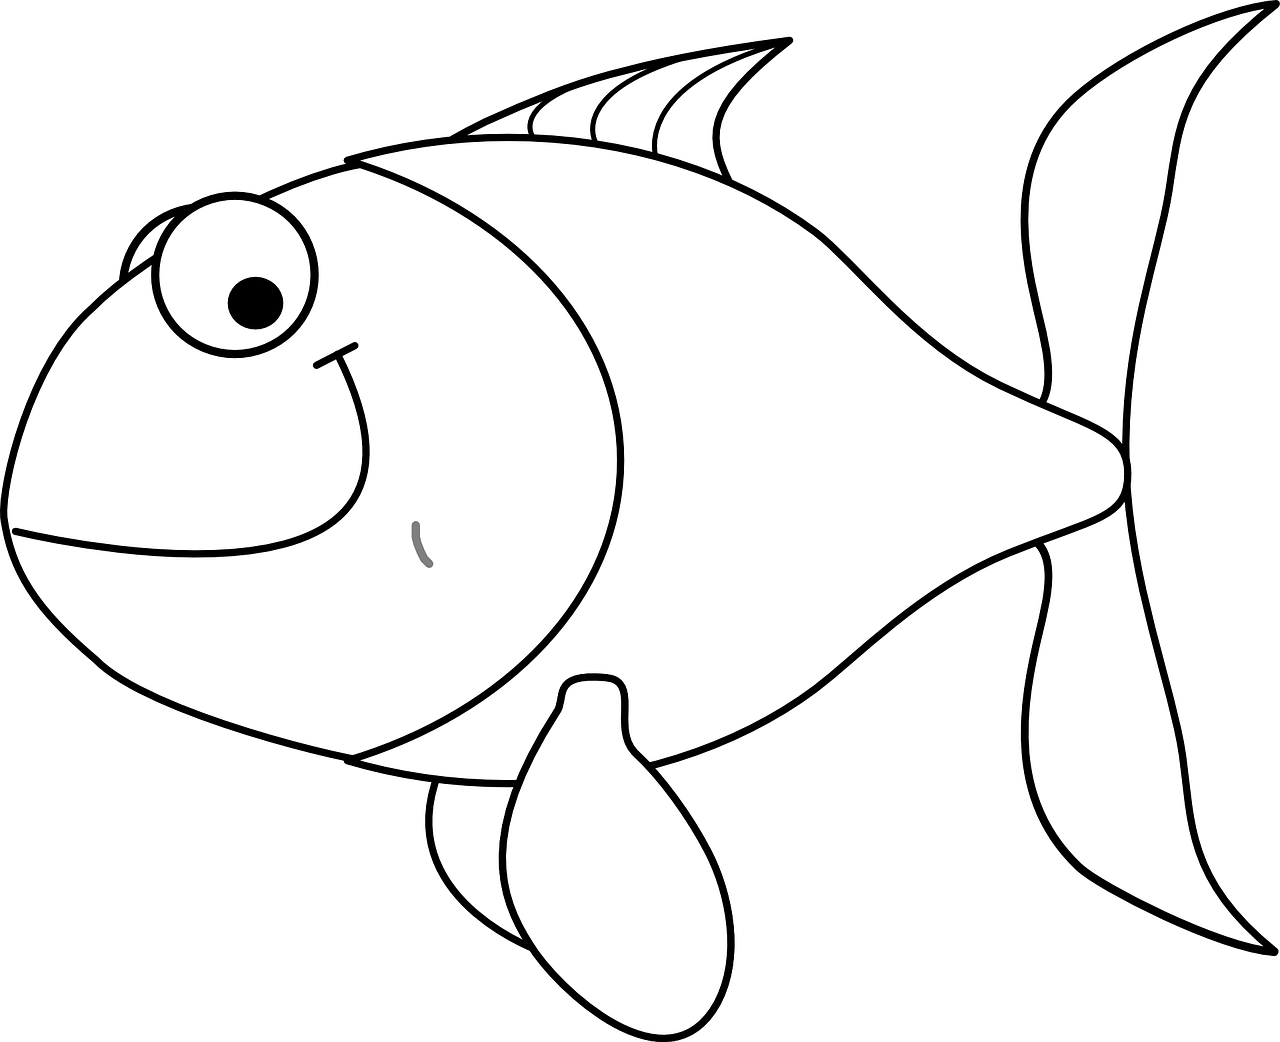 coloring pages for fish fish coloring page 2016 printable activity shelter coloring fish for pages